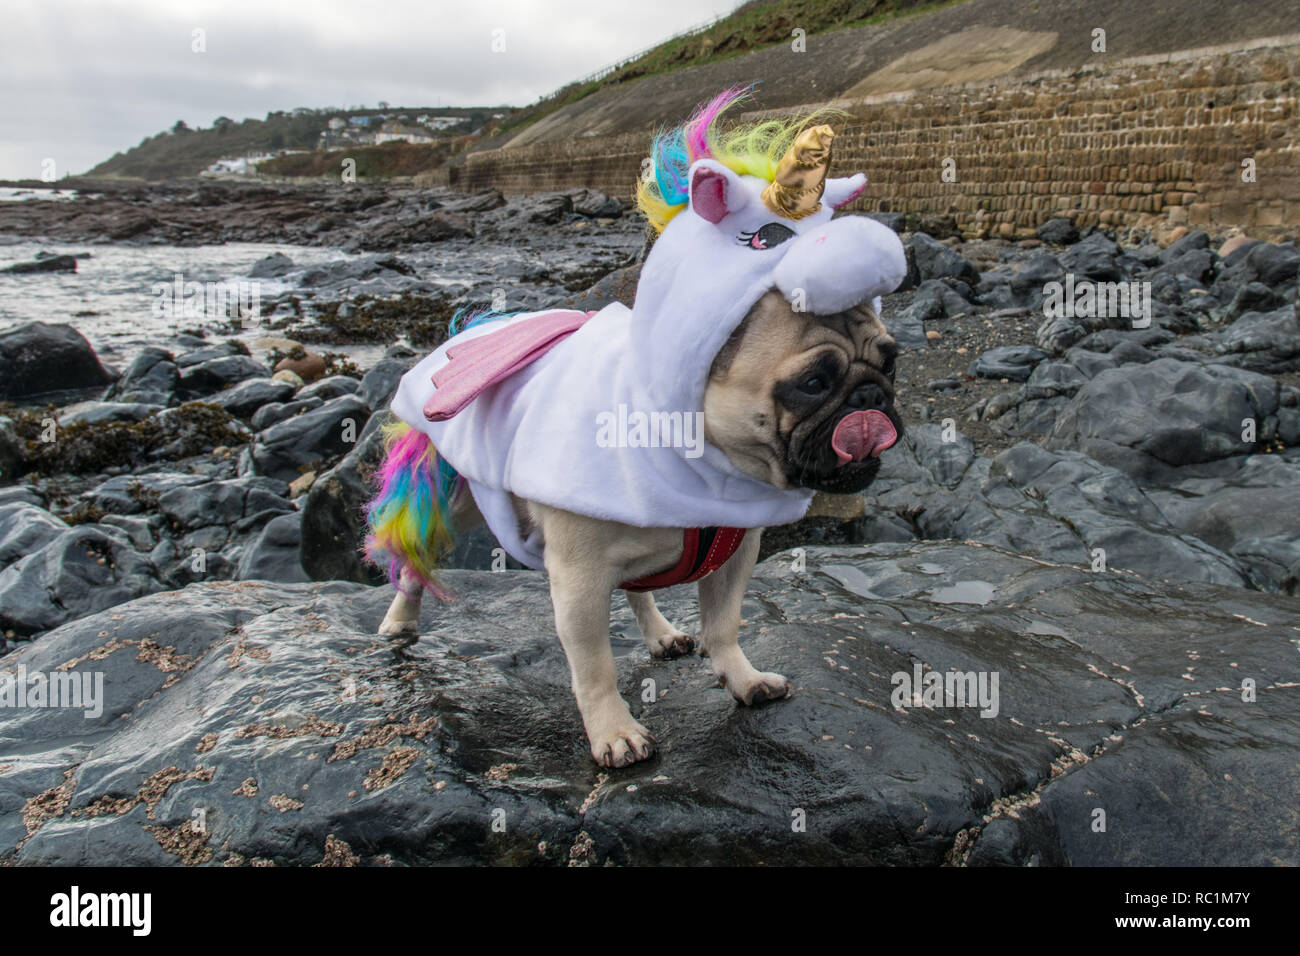 Pug dog dressed in a Unicorn outfit on rocks at Mousehole, Cornwall for national dress your dog day. Stock Photo